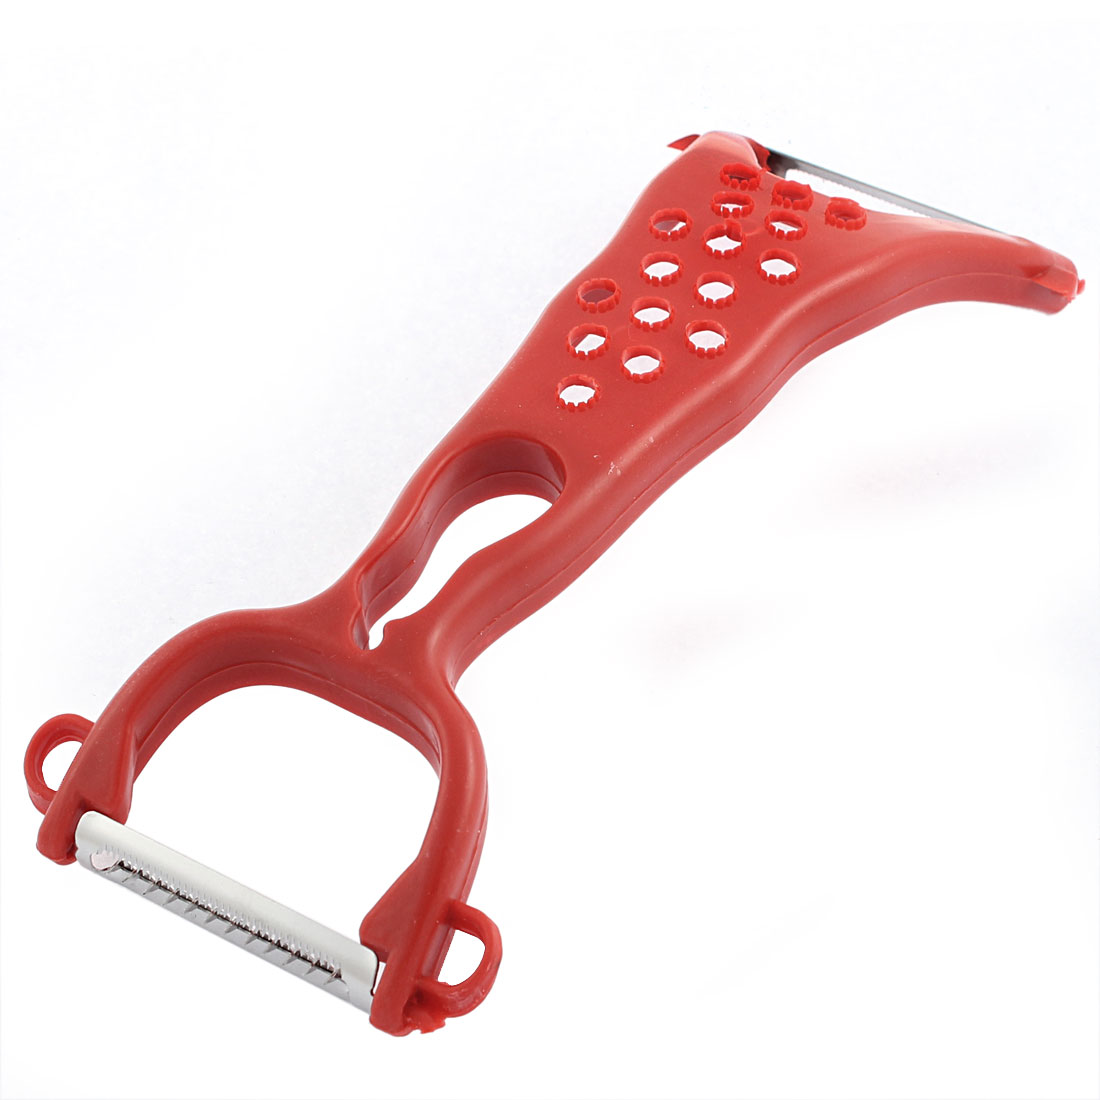 Kitchen Vegetable Fruit Peeler Potato Carrot Slicer Cutter Tool Gadget Red